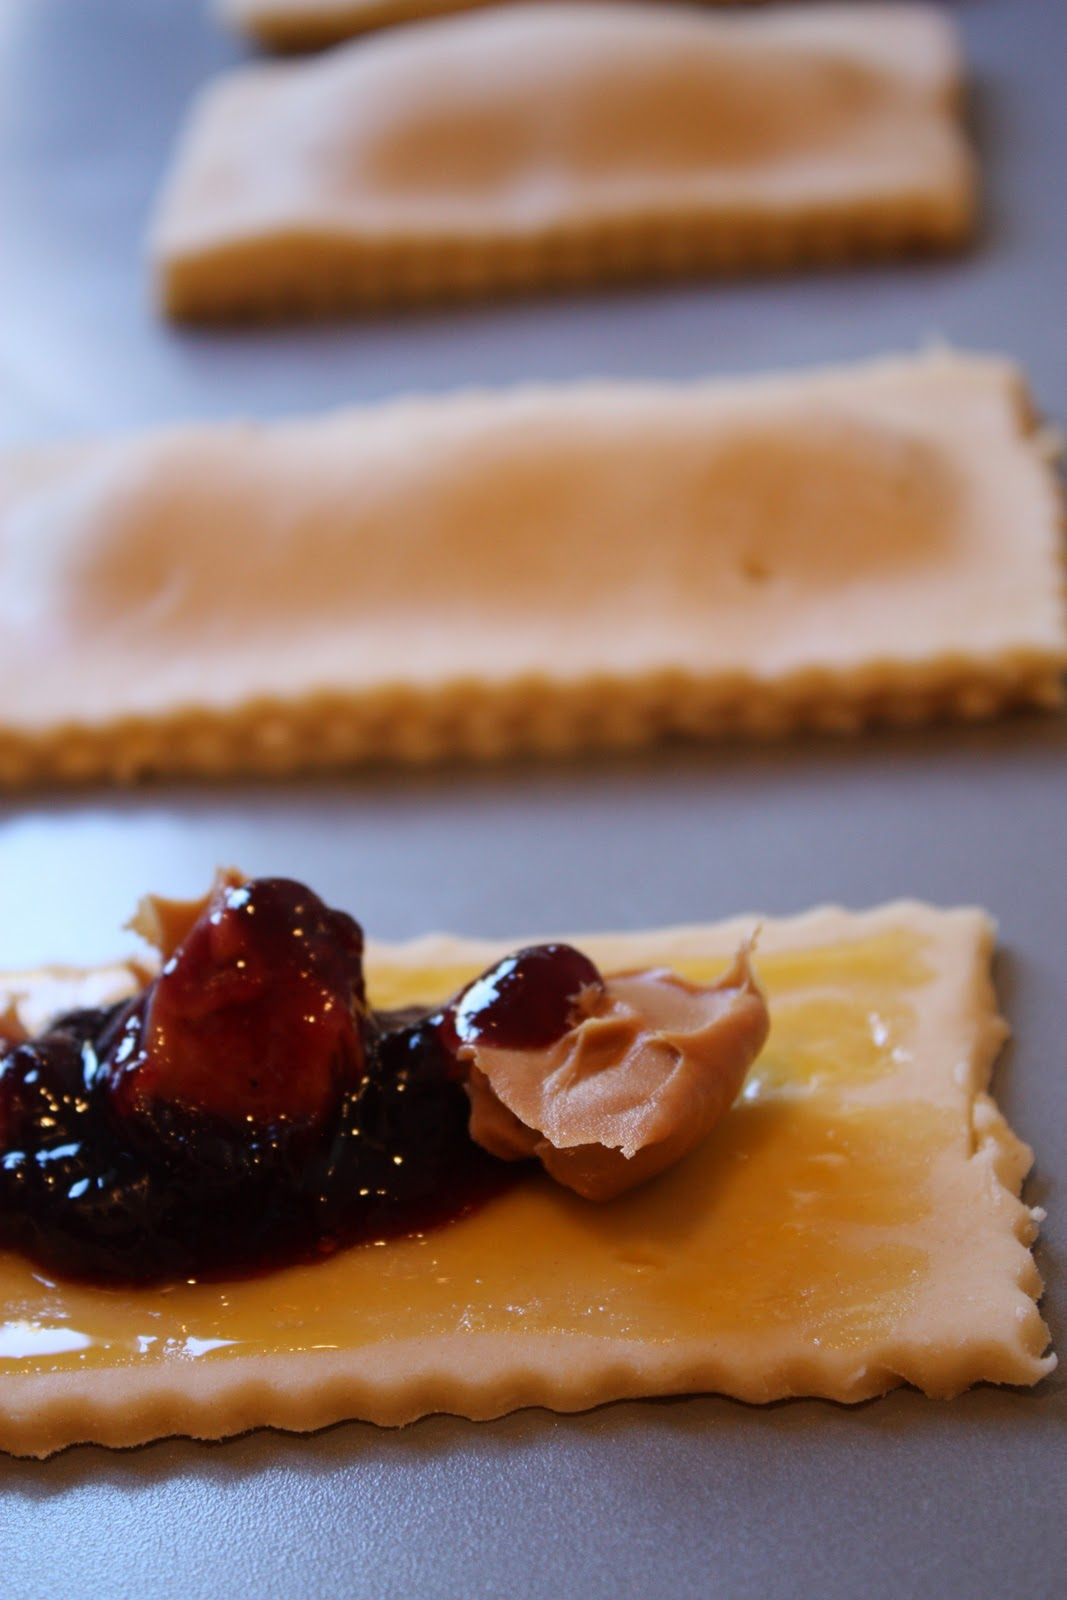 Homemade Peanut Butter and Jelly Pop Tarts